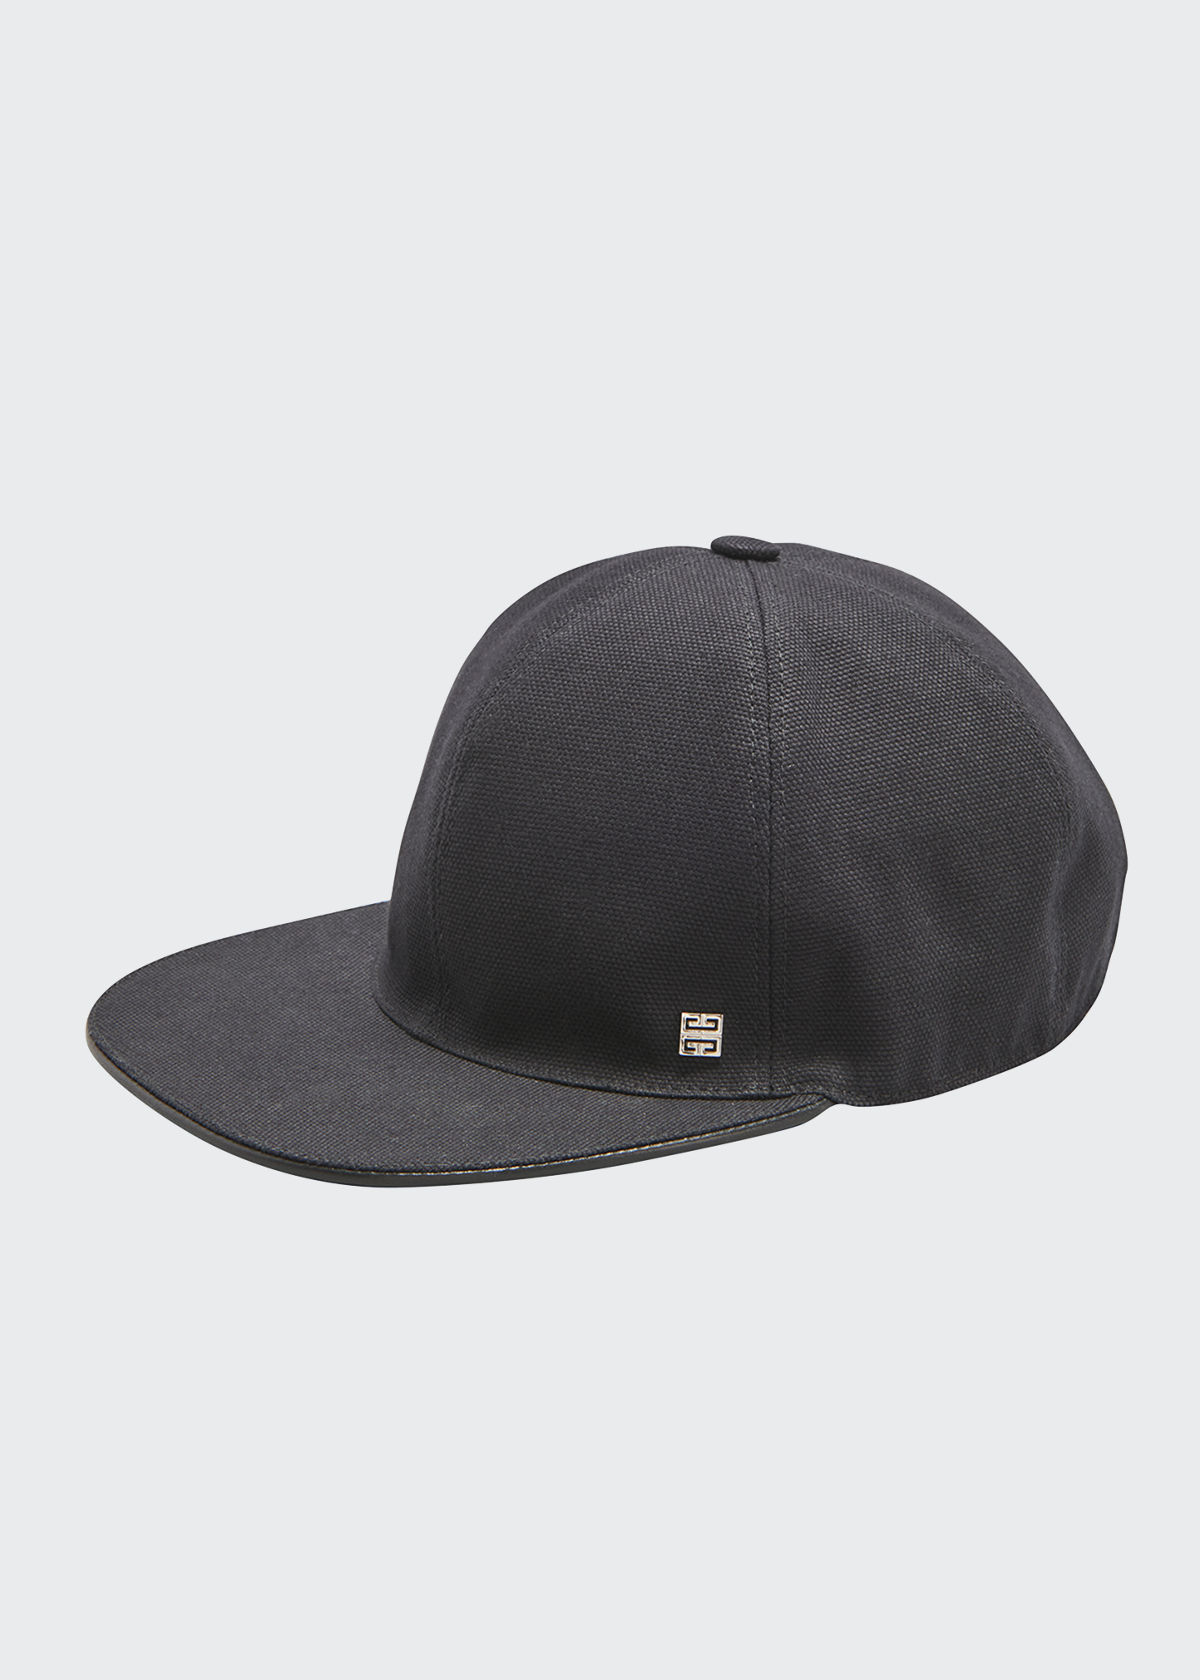 Givenchy MEN'S FLAT BASEBALL CAP WITH LOCK